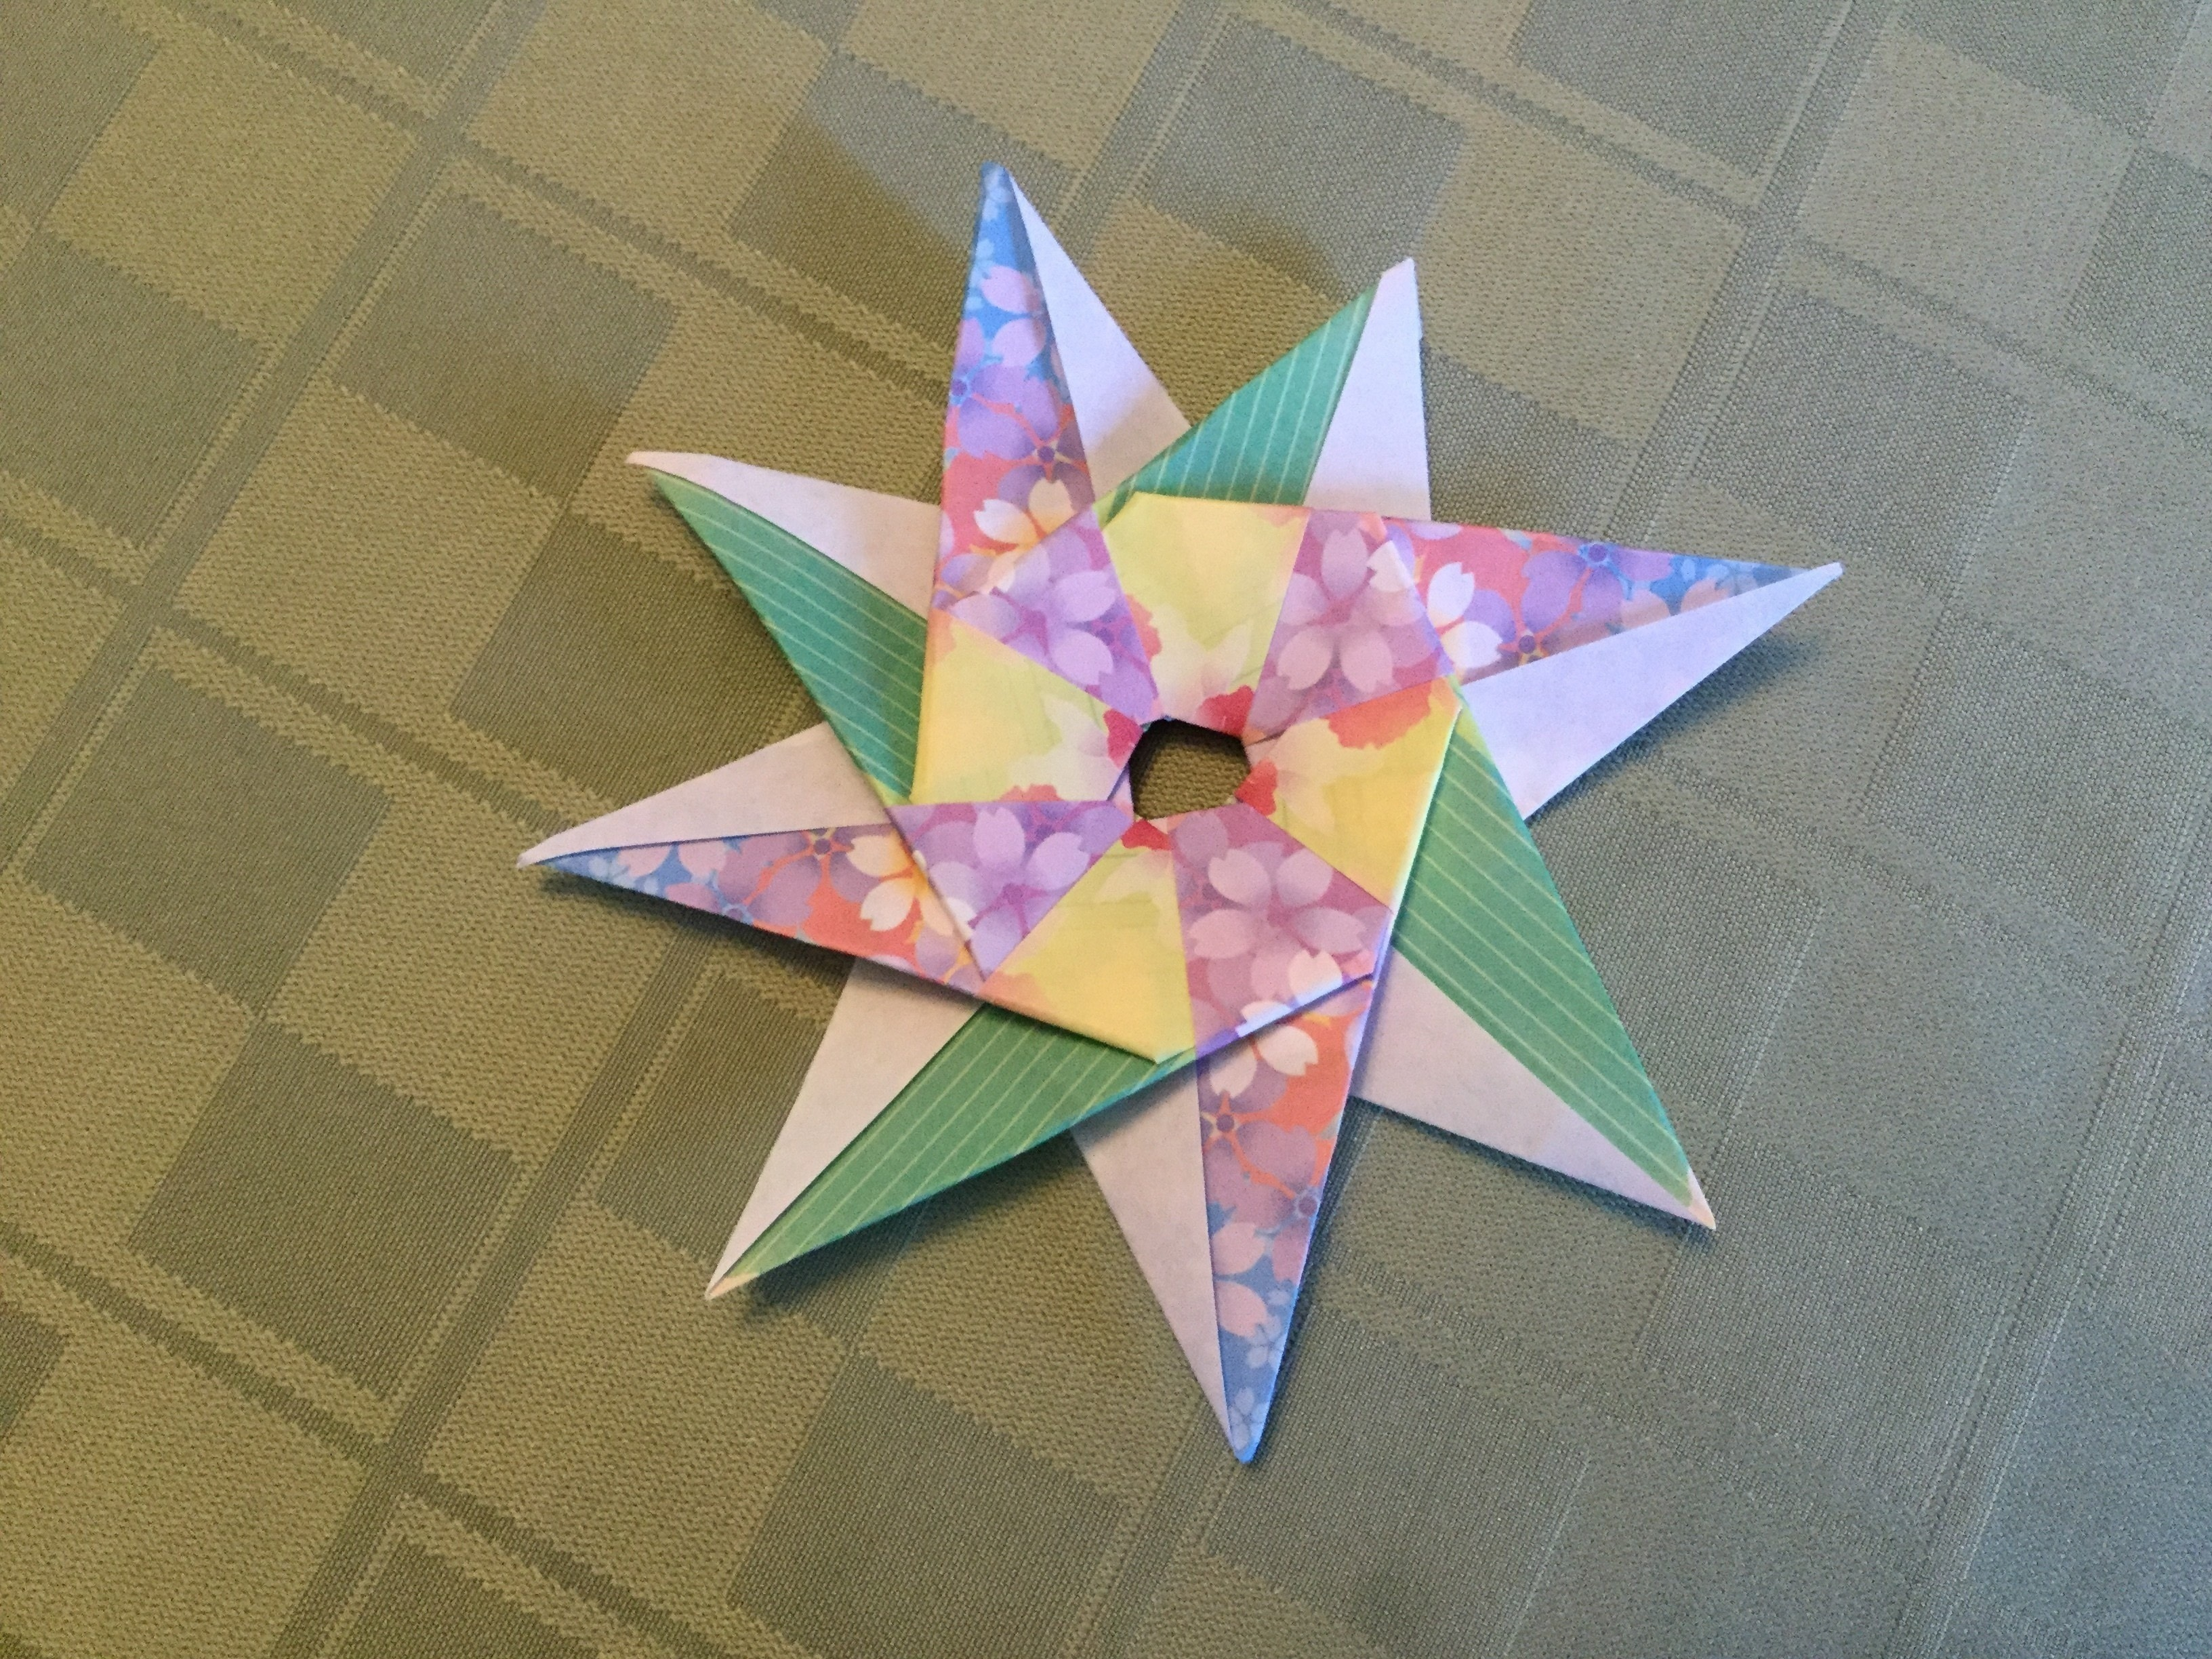 Origami Compass Star · How To Fold An Origami Shape